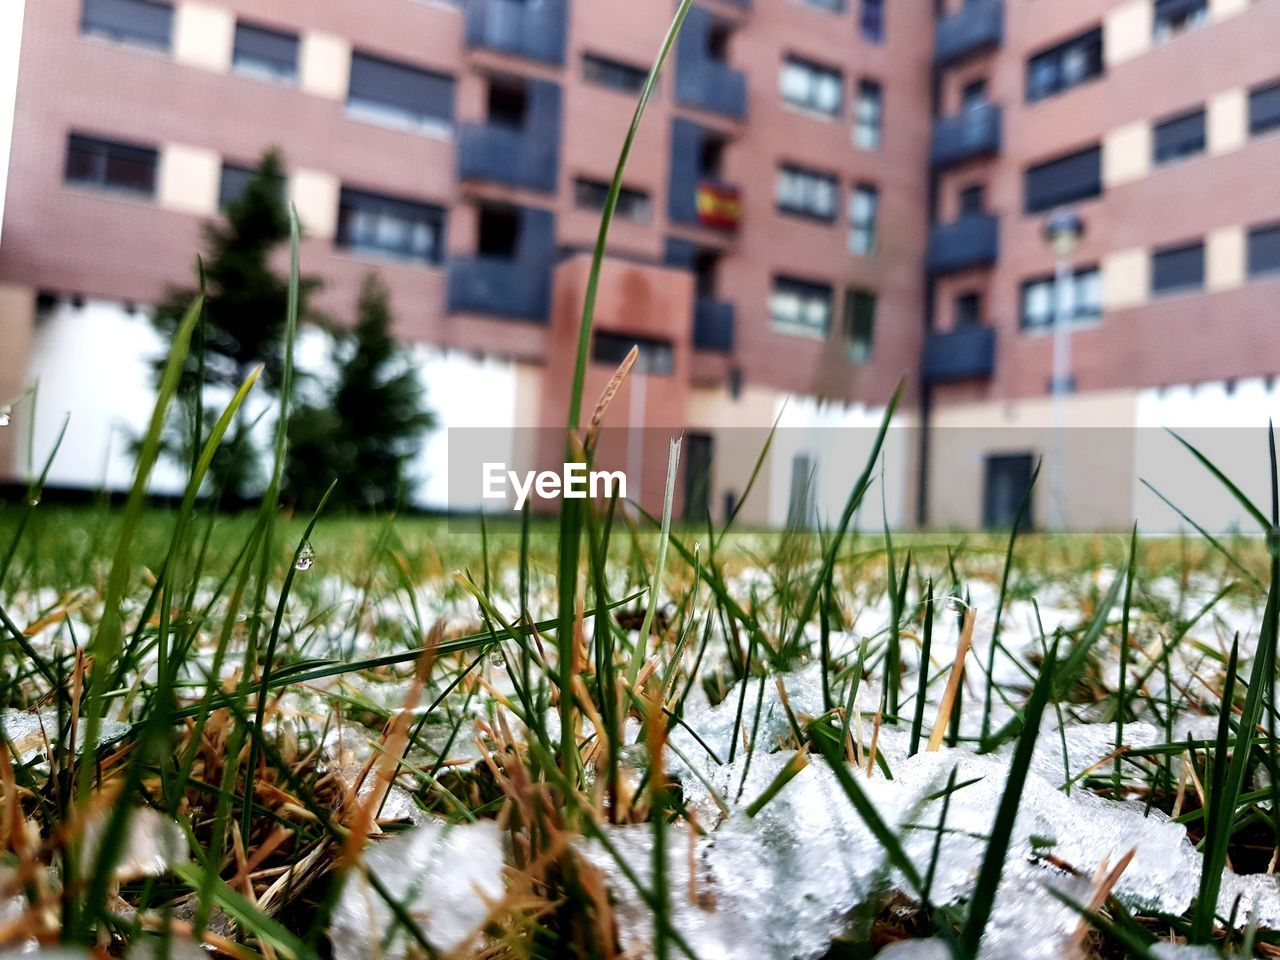 CLOSE-UP OF GRASS AGAINST BUILDINGS